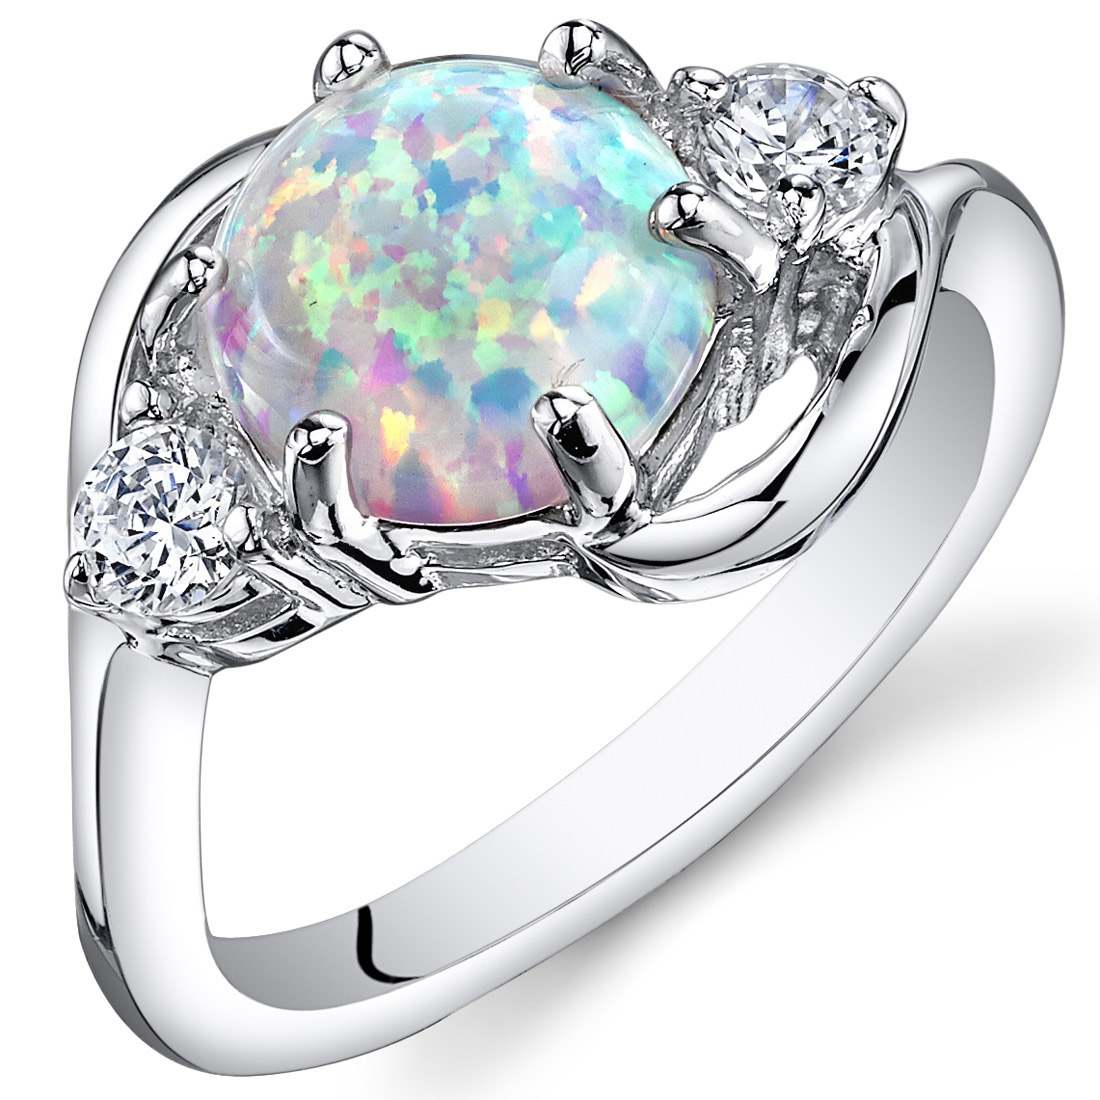 Peora 1.75 Ct 3 Stone Created Opal Ring in Rhodium-Plated Sterling Silver